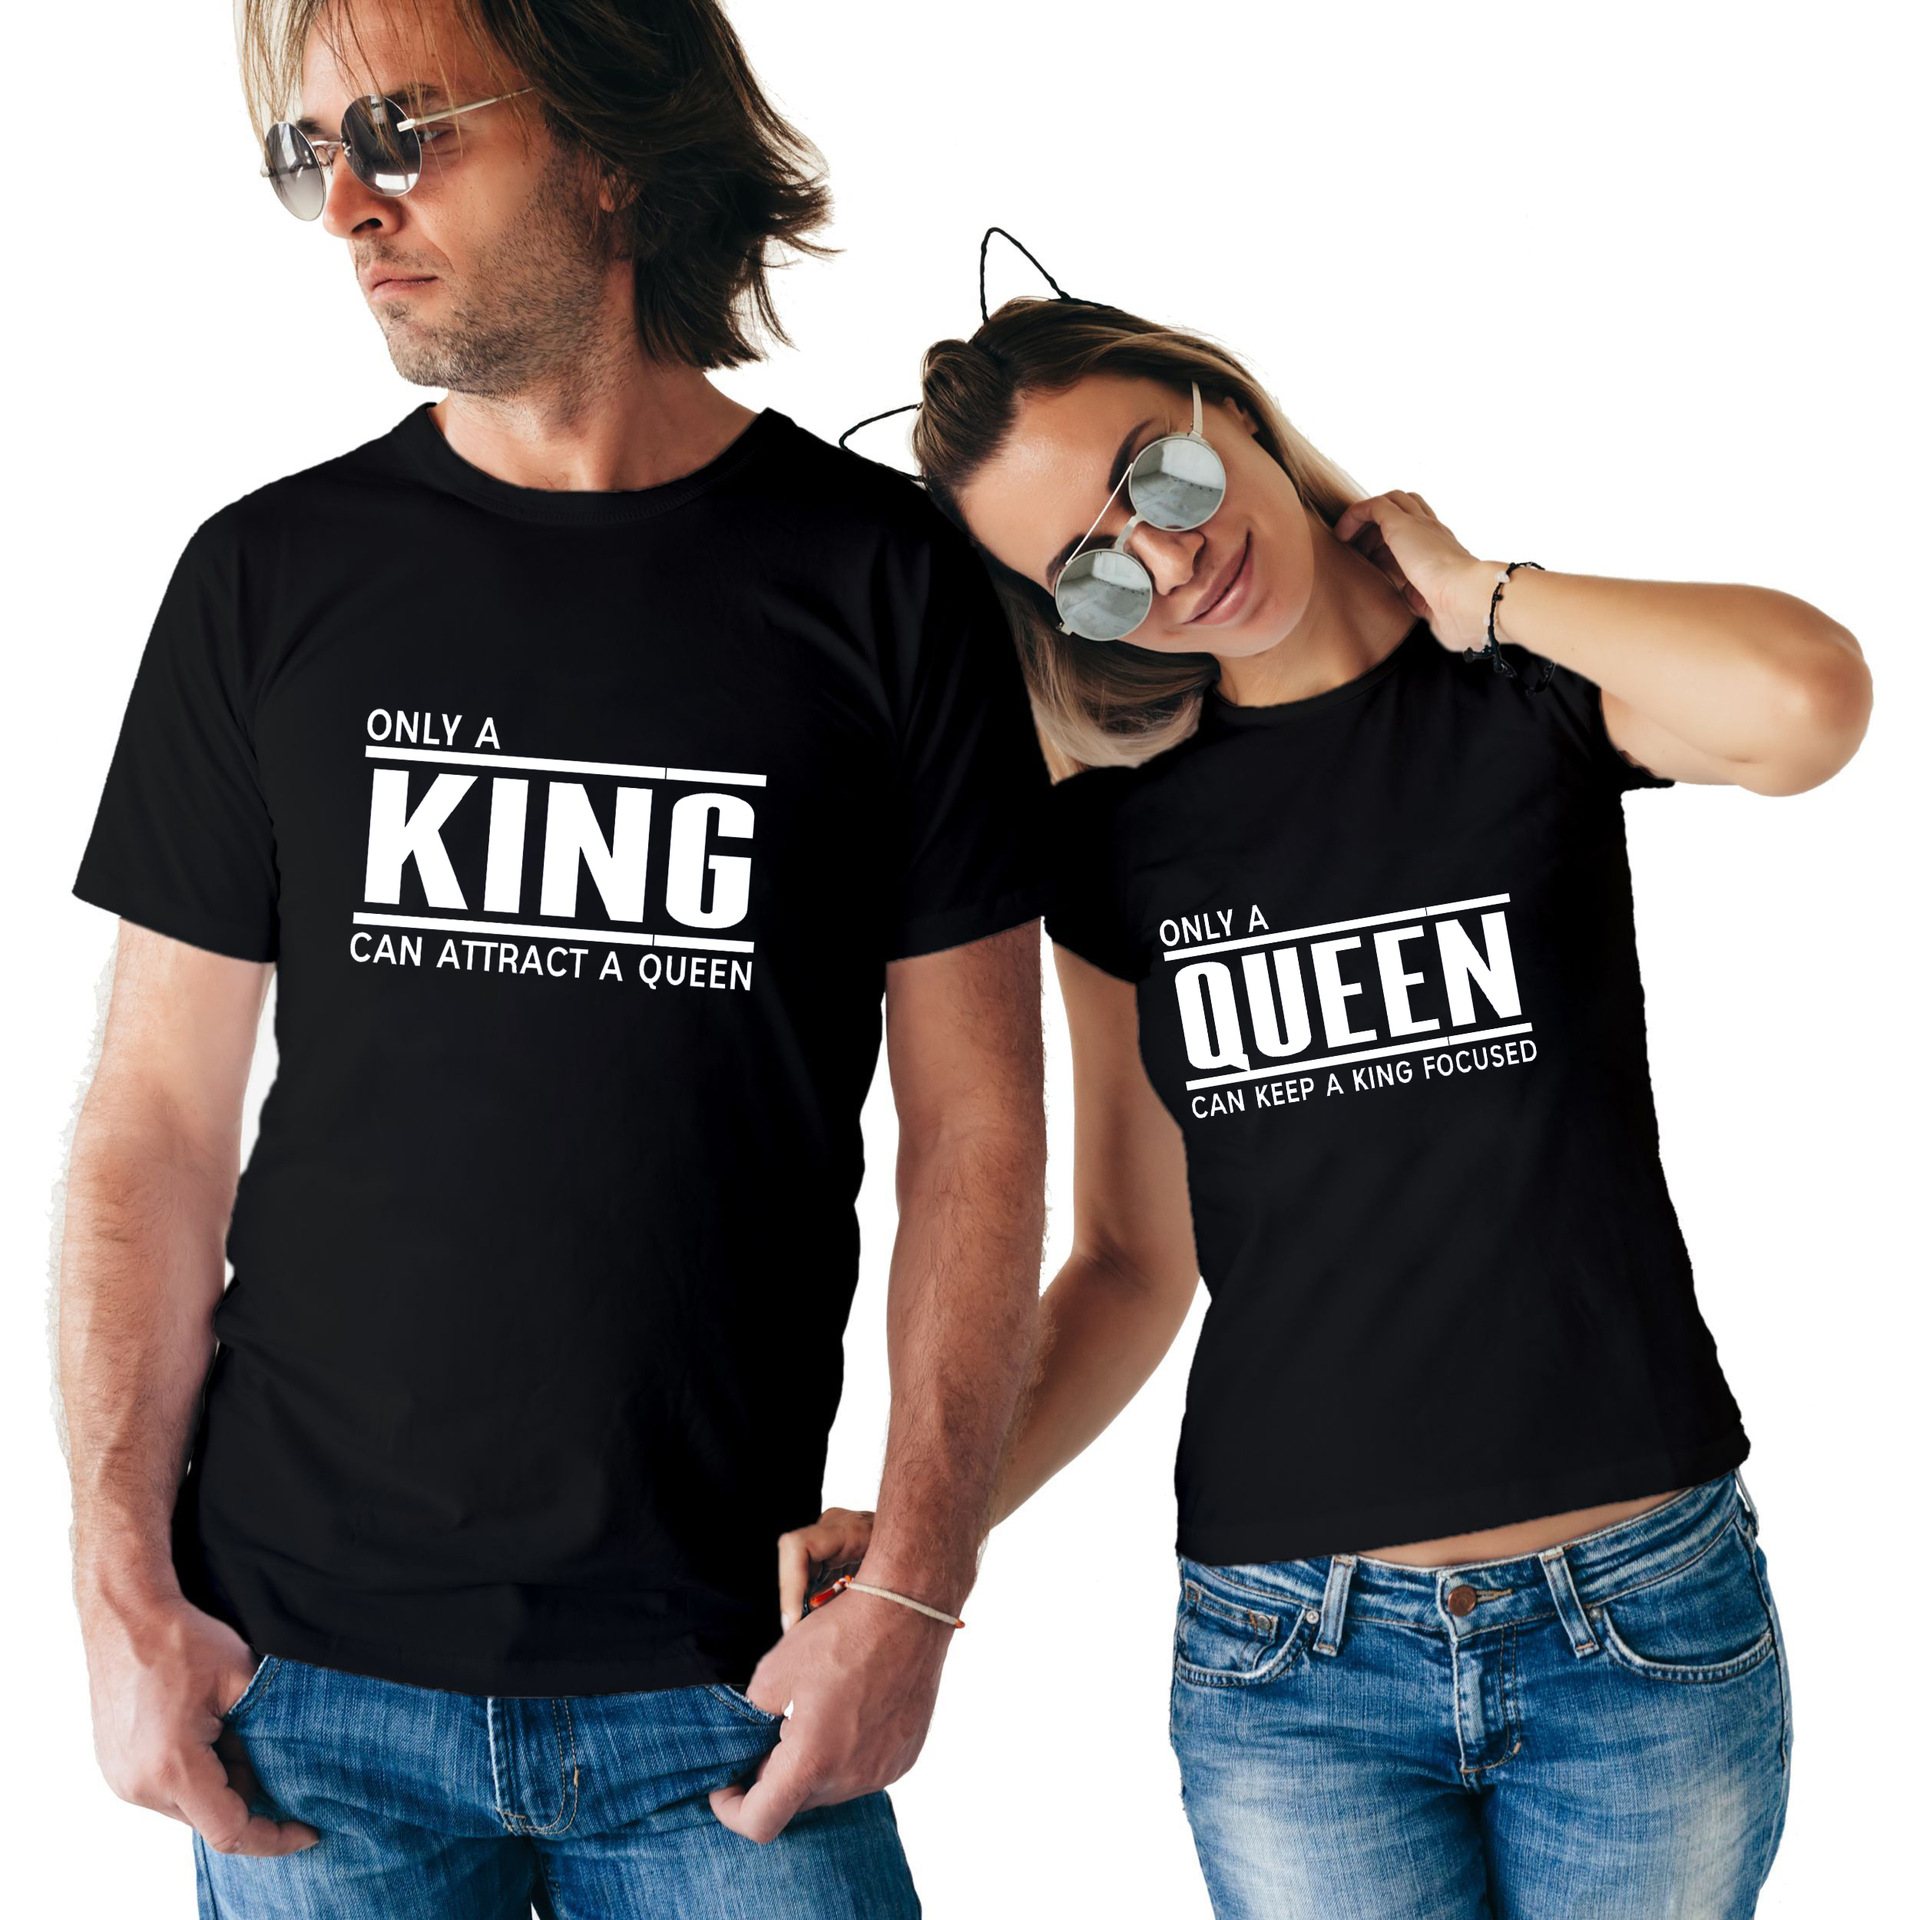 Only A King Can Attract A Queen Letters T-shirt Women Tshirt Streetwear Female Short Sleeve Tops Tee Shirt Femme High Quality